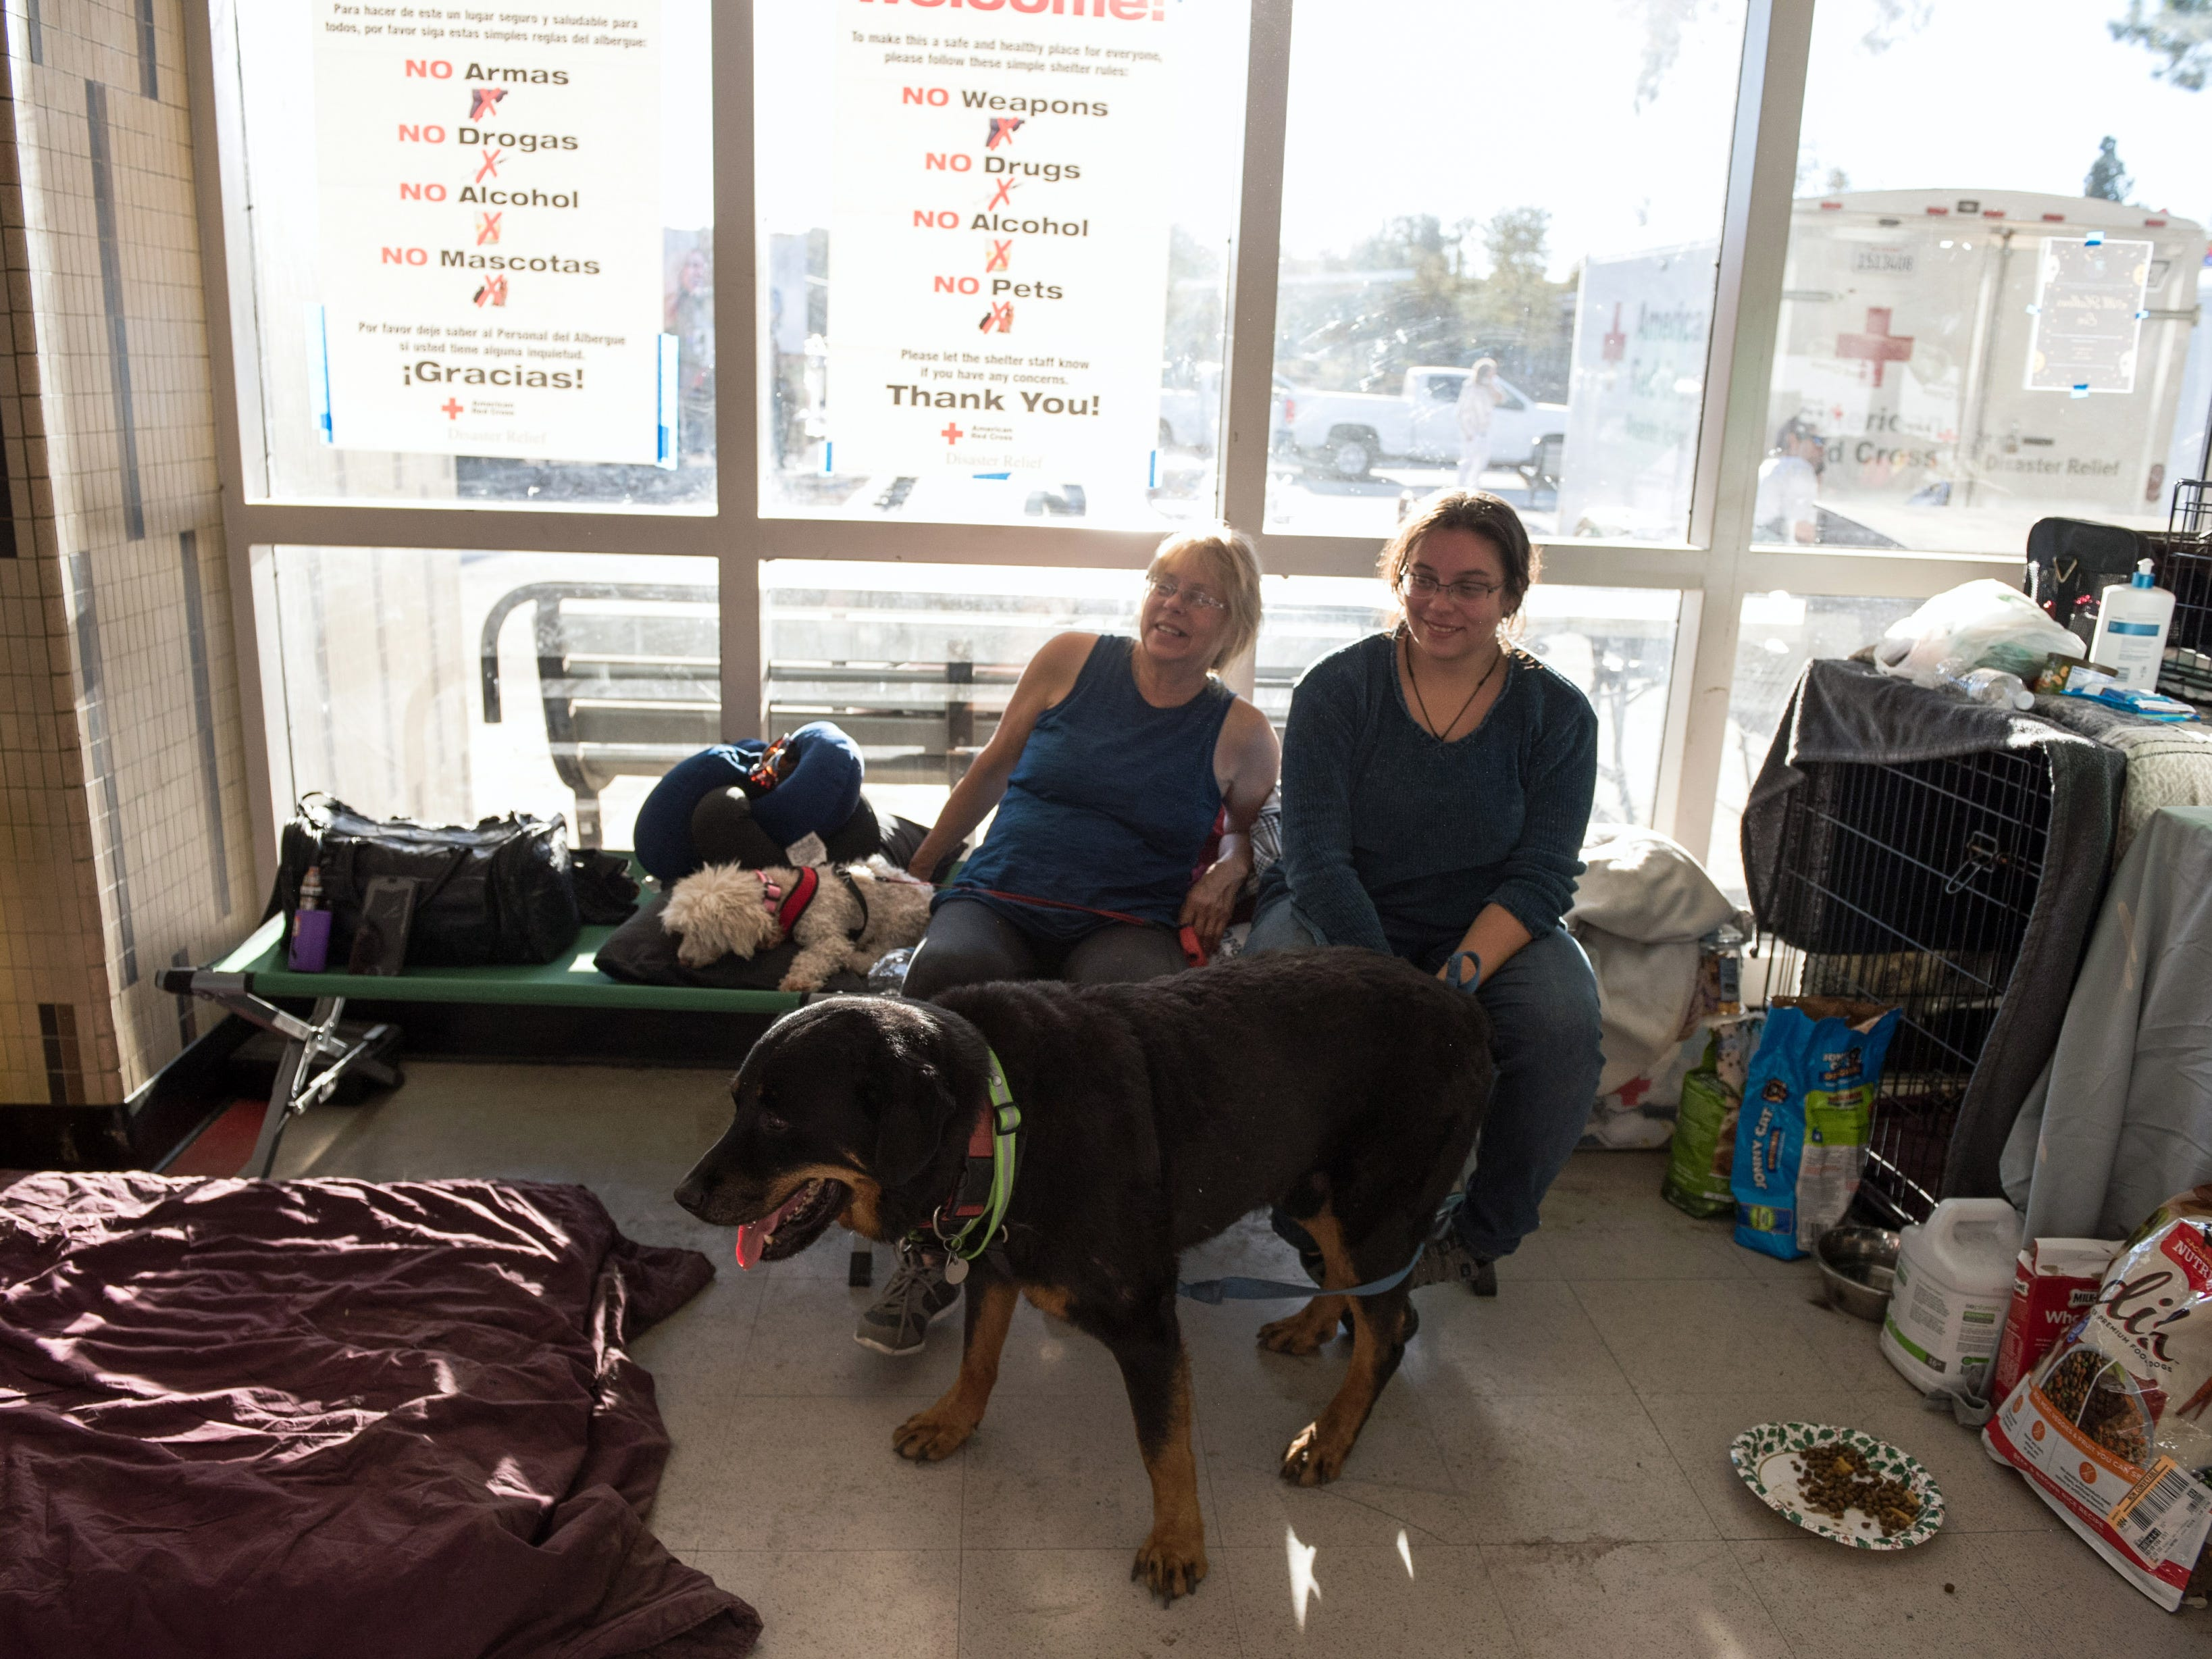 Belinda and Nikki Teague evacuated from their home due to the Woolsey Fire on Nov. 12, 2018. They brought their 3 dogs, 2 cats, and 2 turtles with them to the Red Cross shelter at Pierce College in Woodland Hills, Calif.